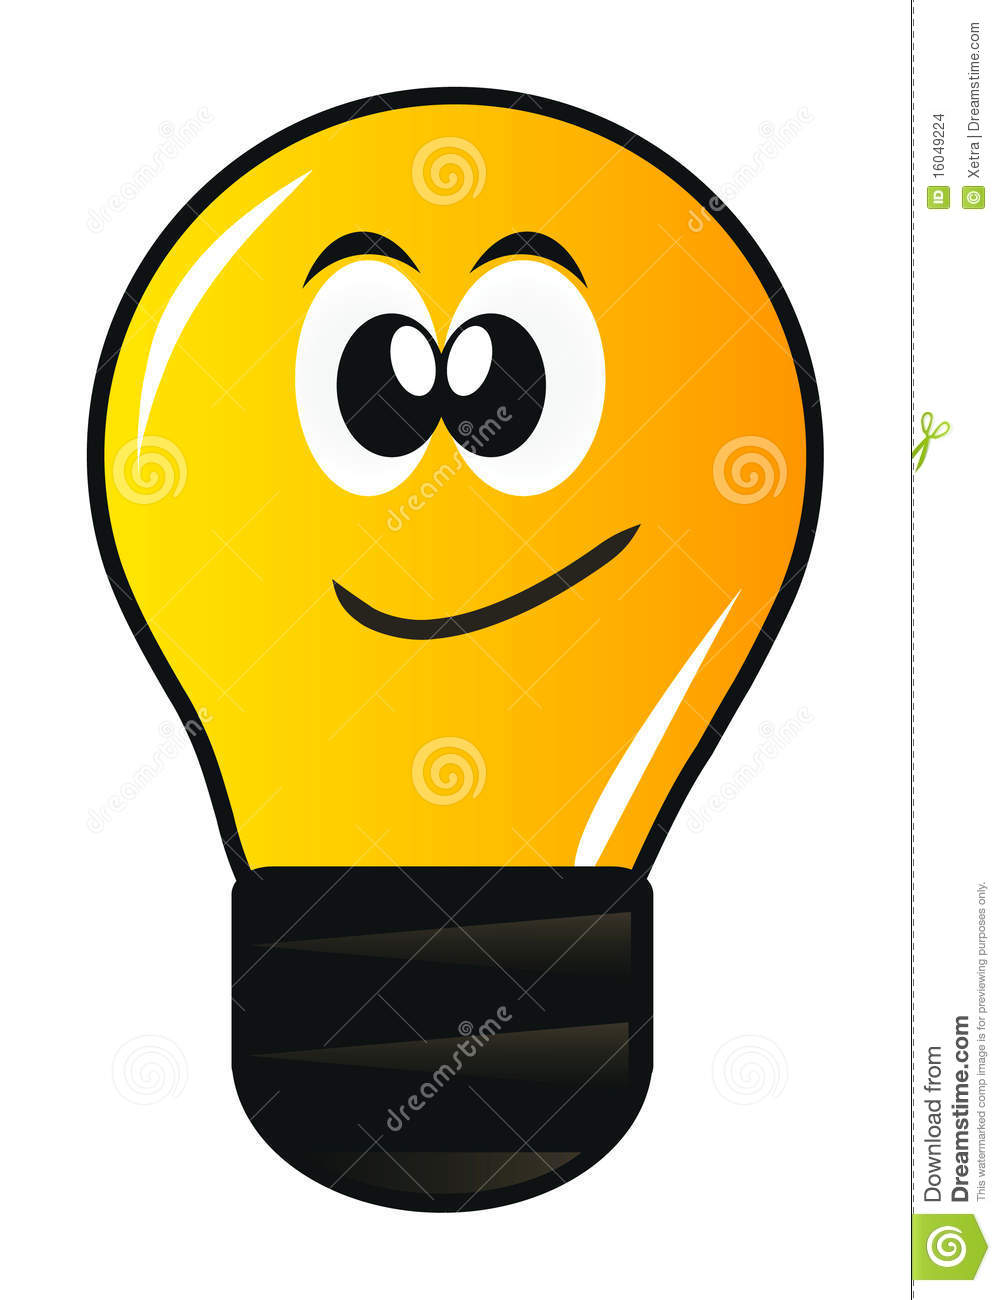 Cartoon Lamp Stock Images - Image: 16049224